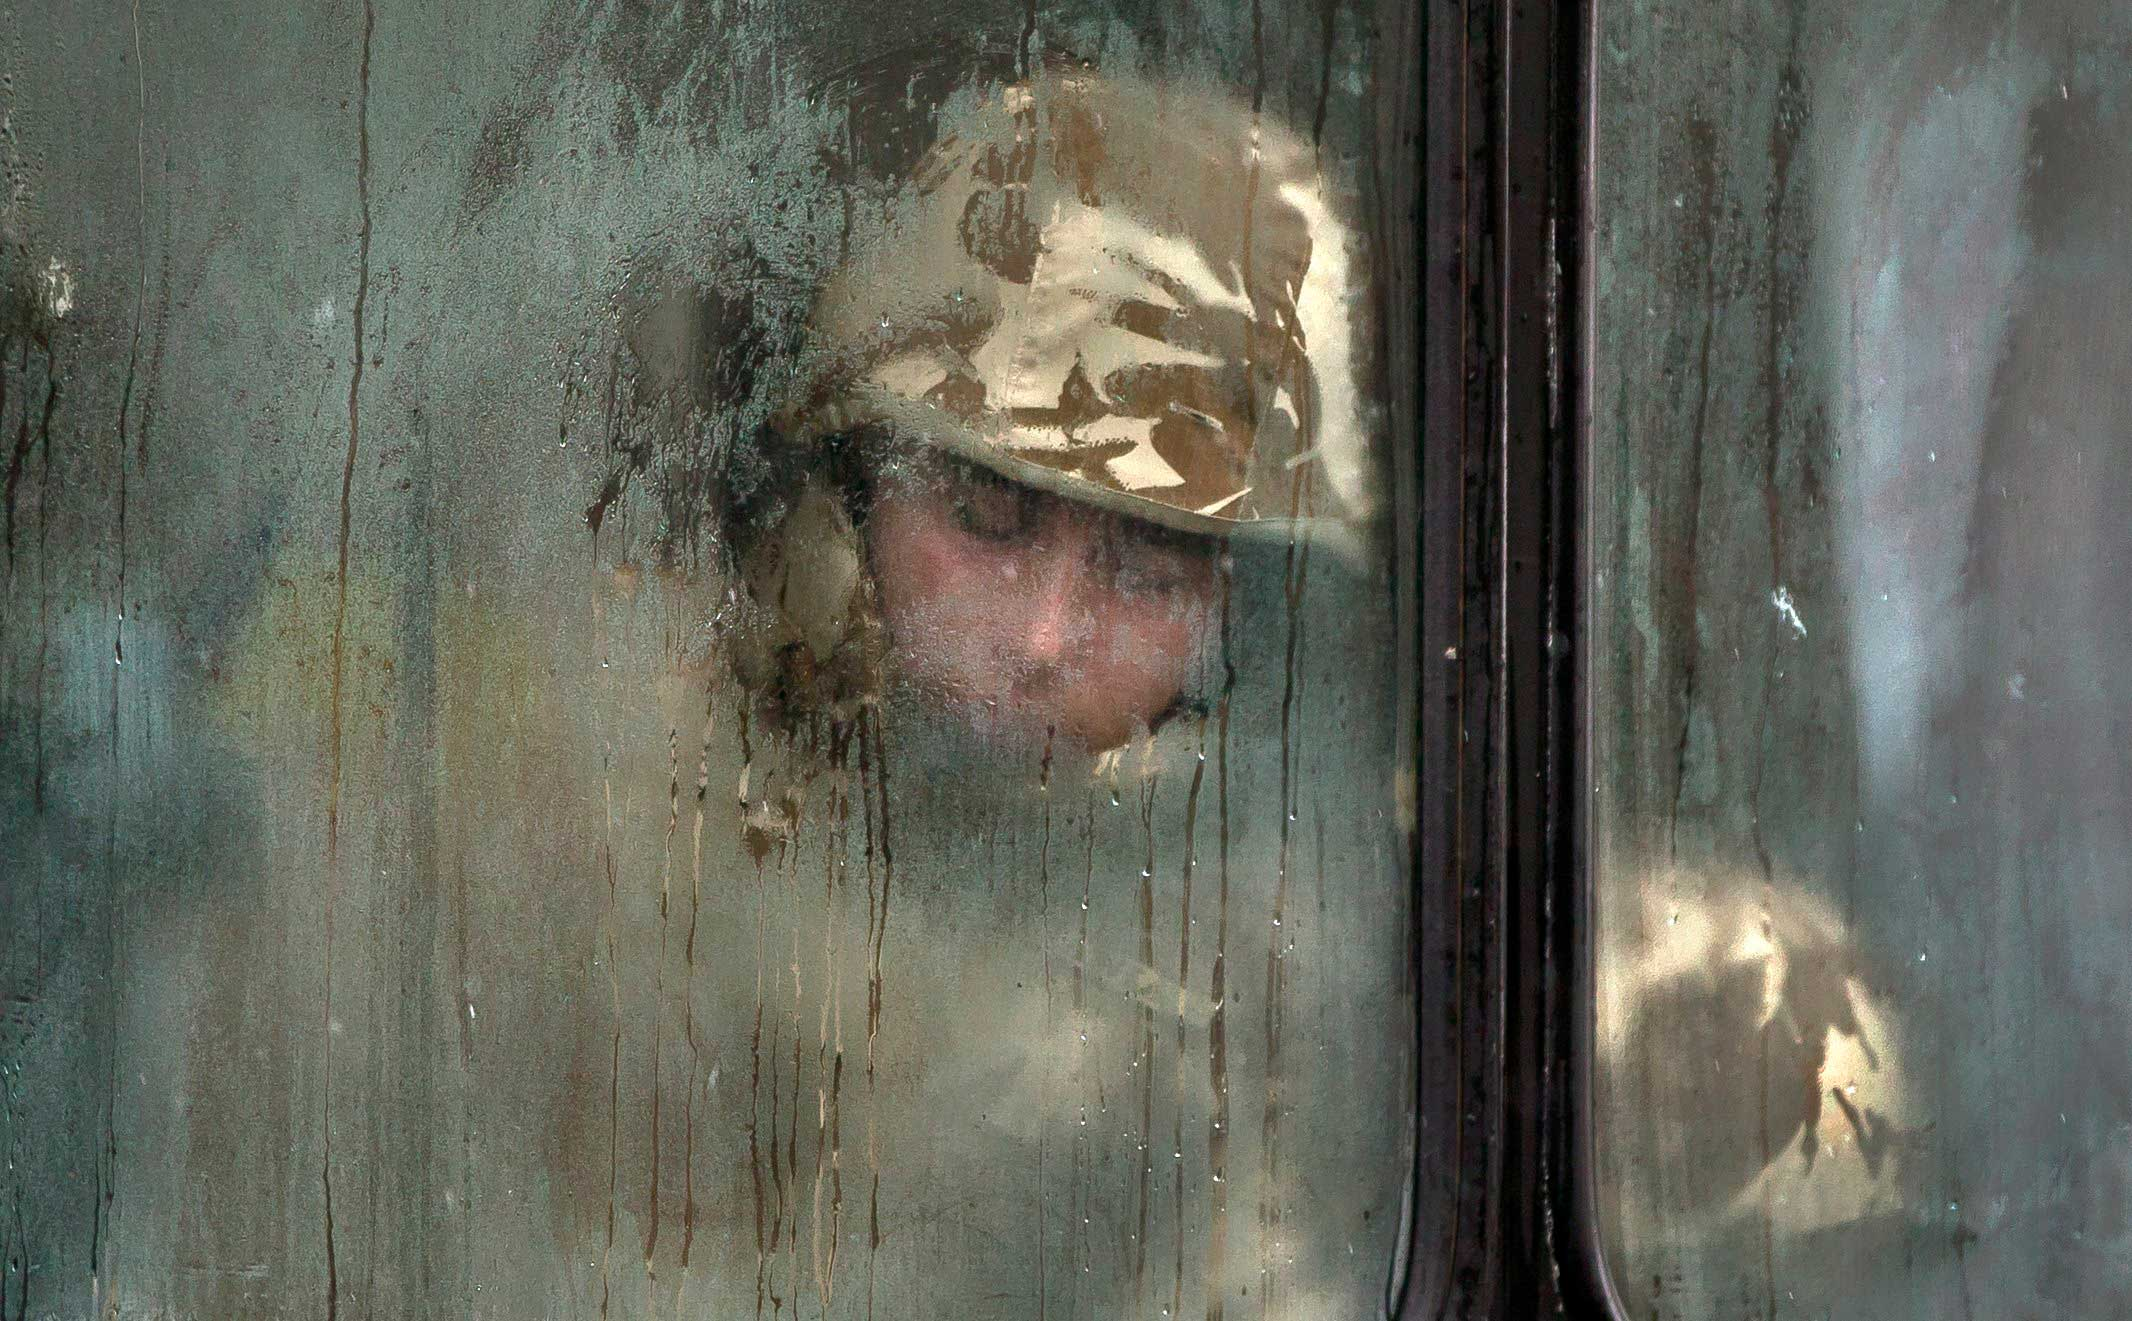 Dec. 1, 2014. A Romanian soldier sleeps on a bus before taking part in a military parade to mark Romania's national day in Bucharest, Romania.